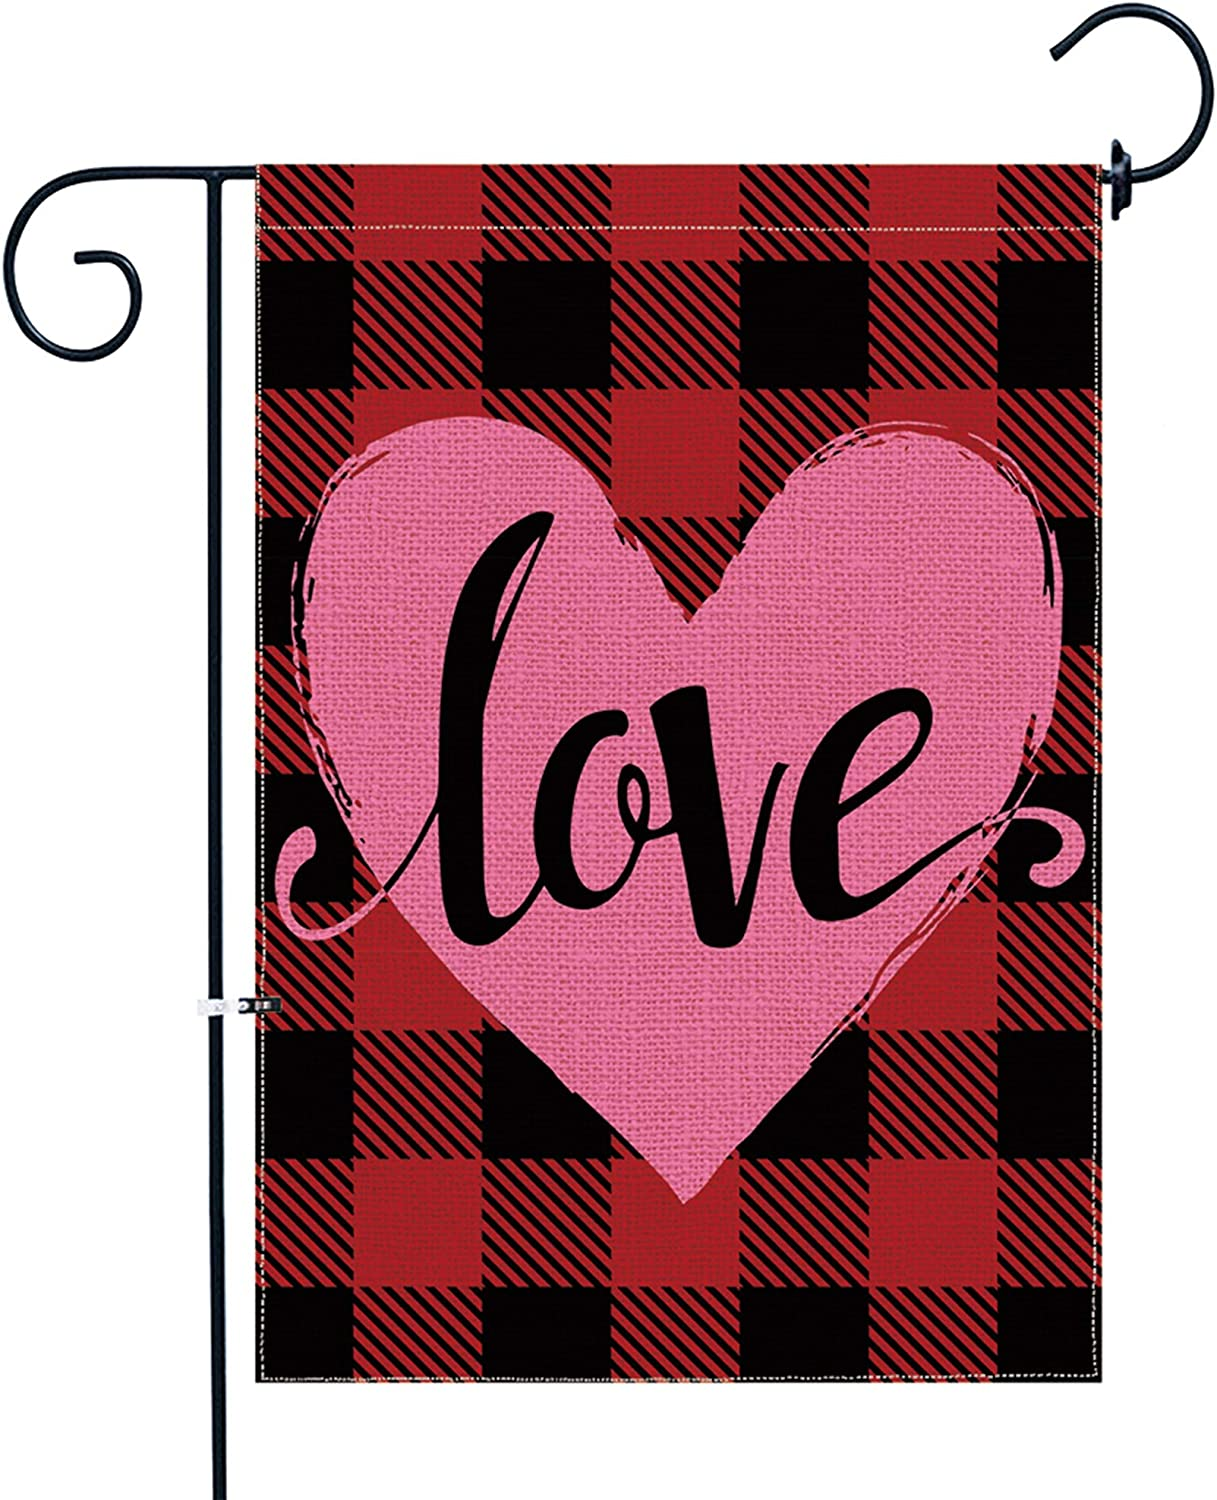 pinata Valentine Garden Flag 12 x 18 Double Sided, Buffalo Plaid Red Heart Love Valentines Day Flags Yard Outdoor Decorations, Holiday Spring Seasonal Small Burlap Vertical Banner Decorative Sign